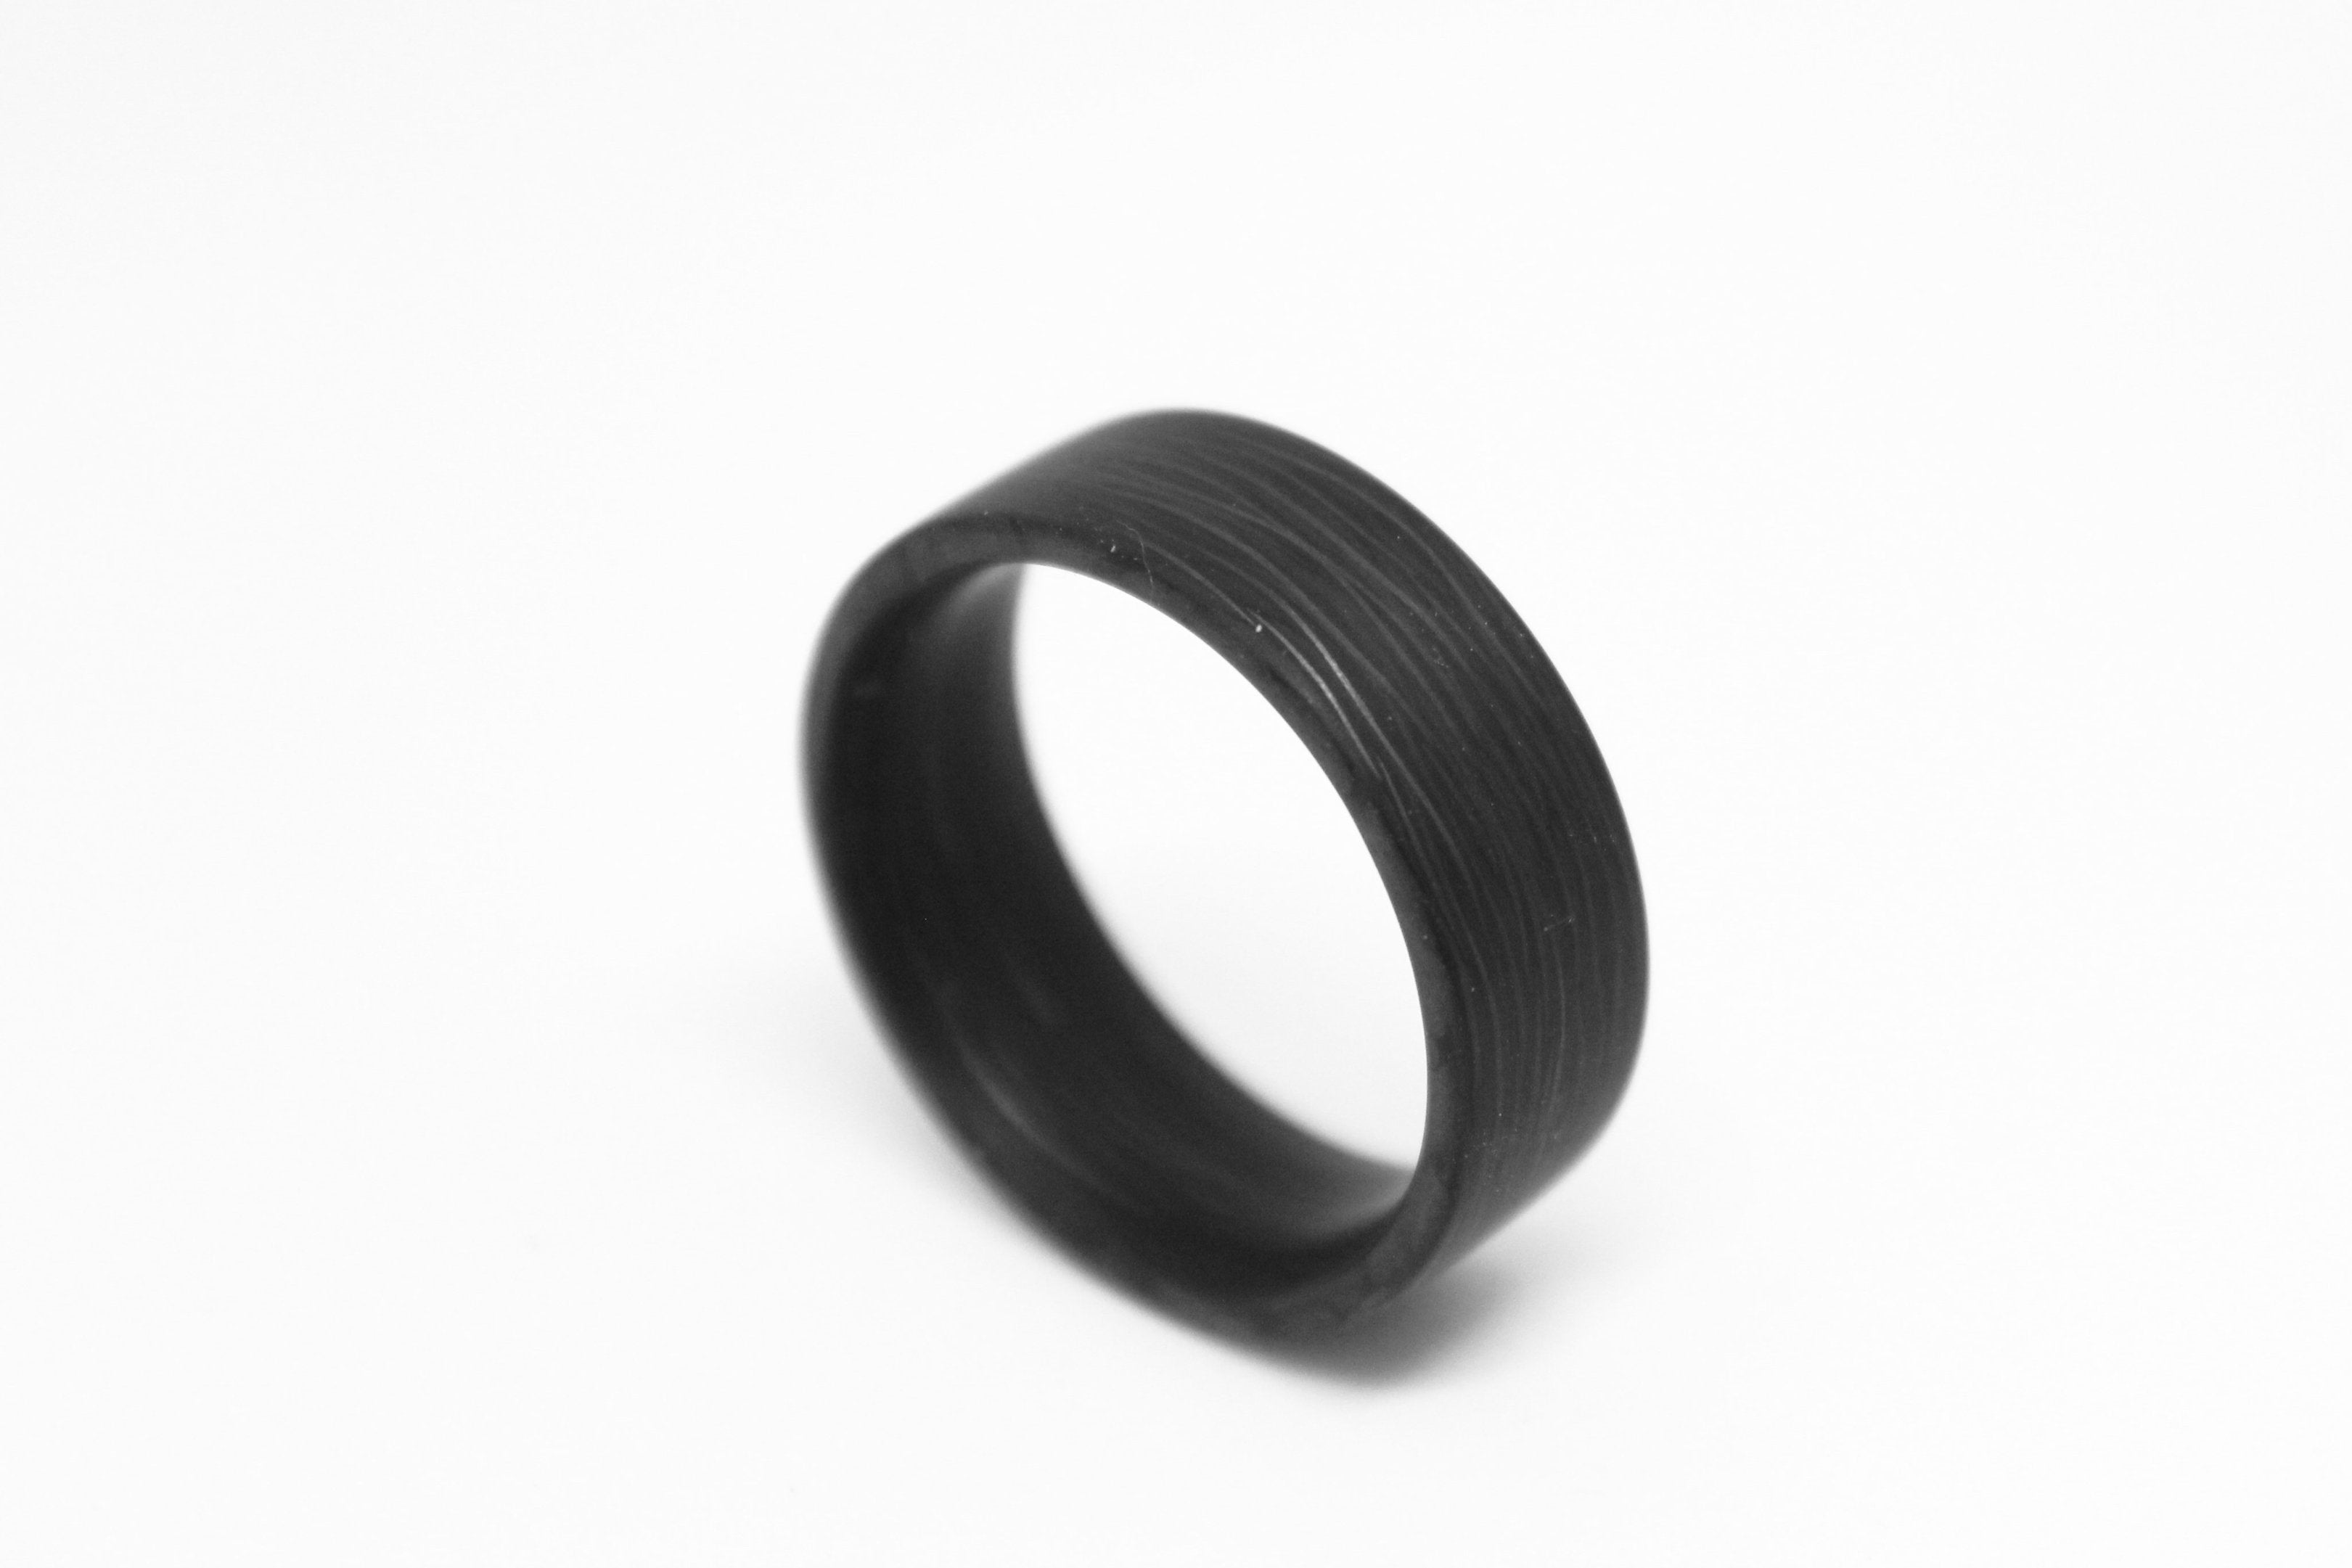 Size 12 Space X Carbon Fiber Ring